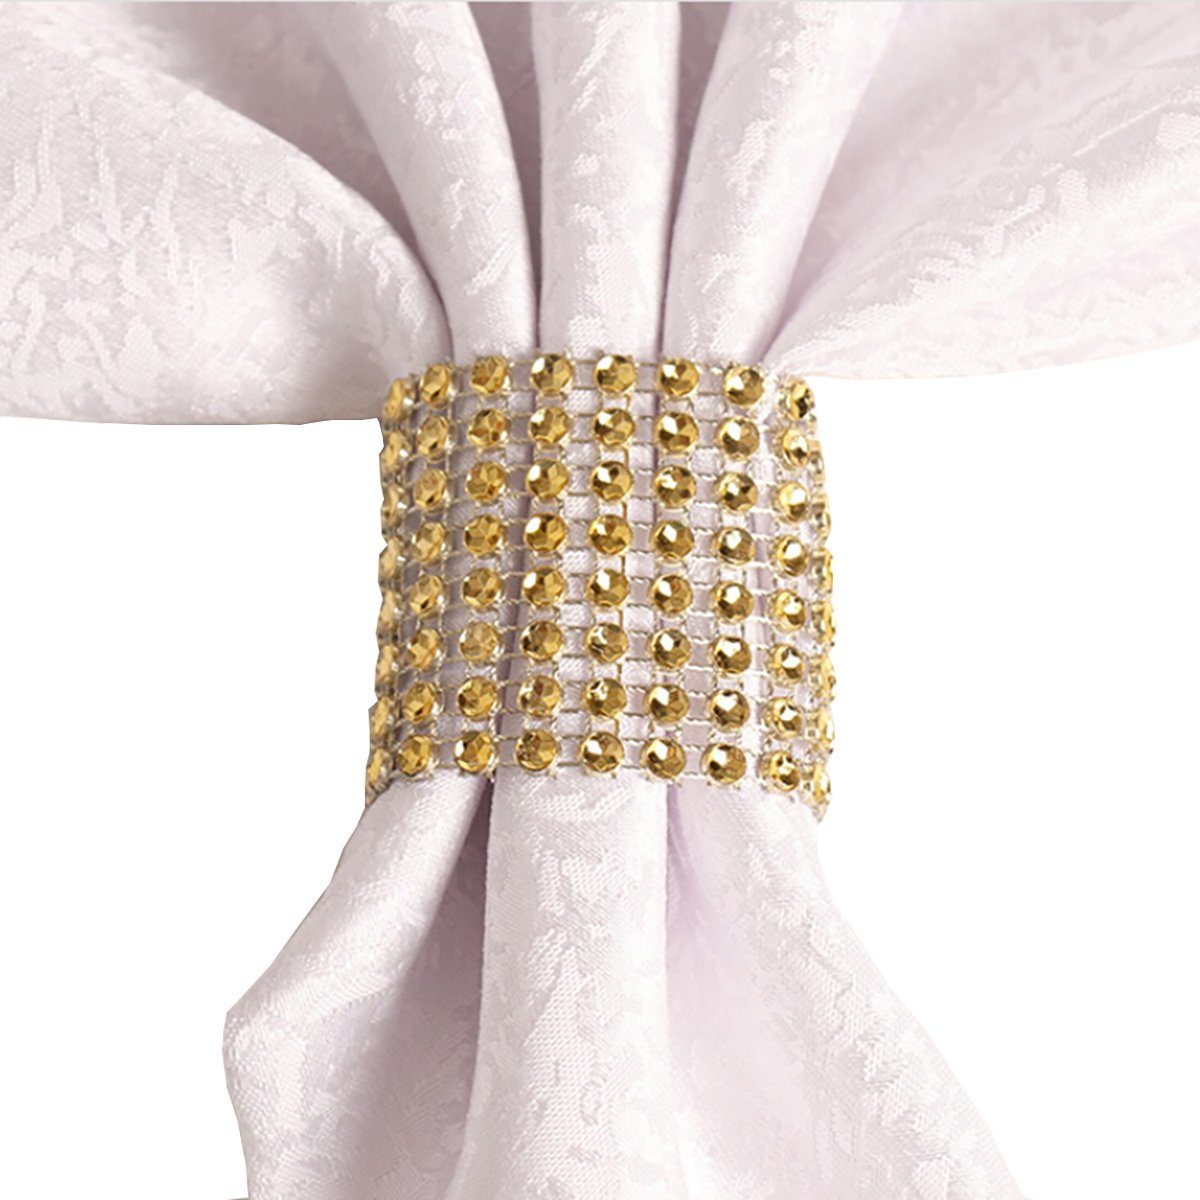 Yuengs 100 PCS Napkin Rings Sparkly Adornment for Wedding/Shower / Party – Velcro Napkins wrap (Gold)